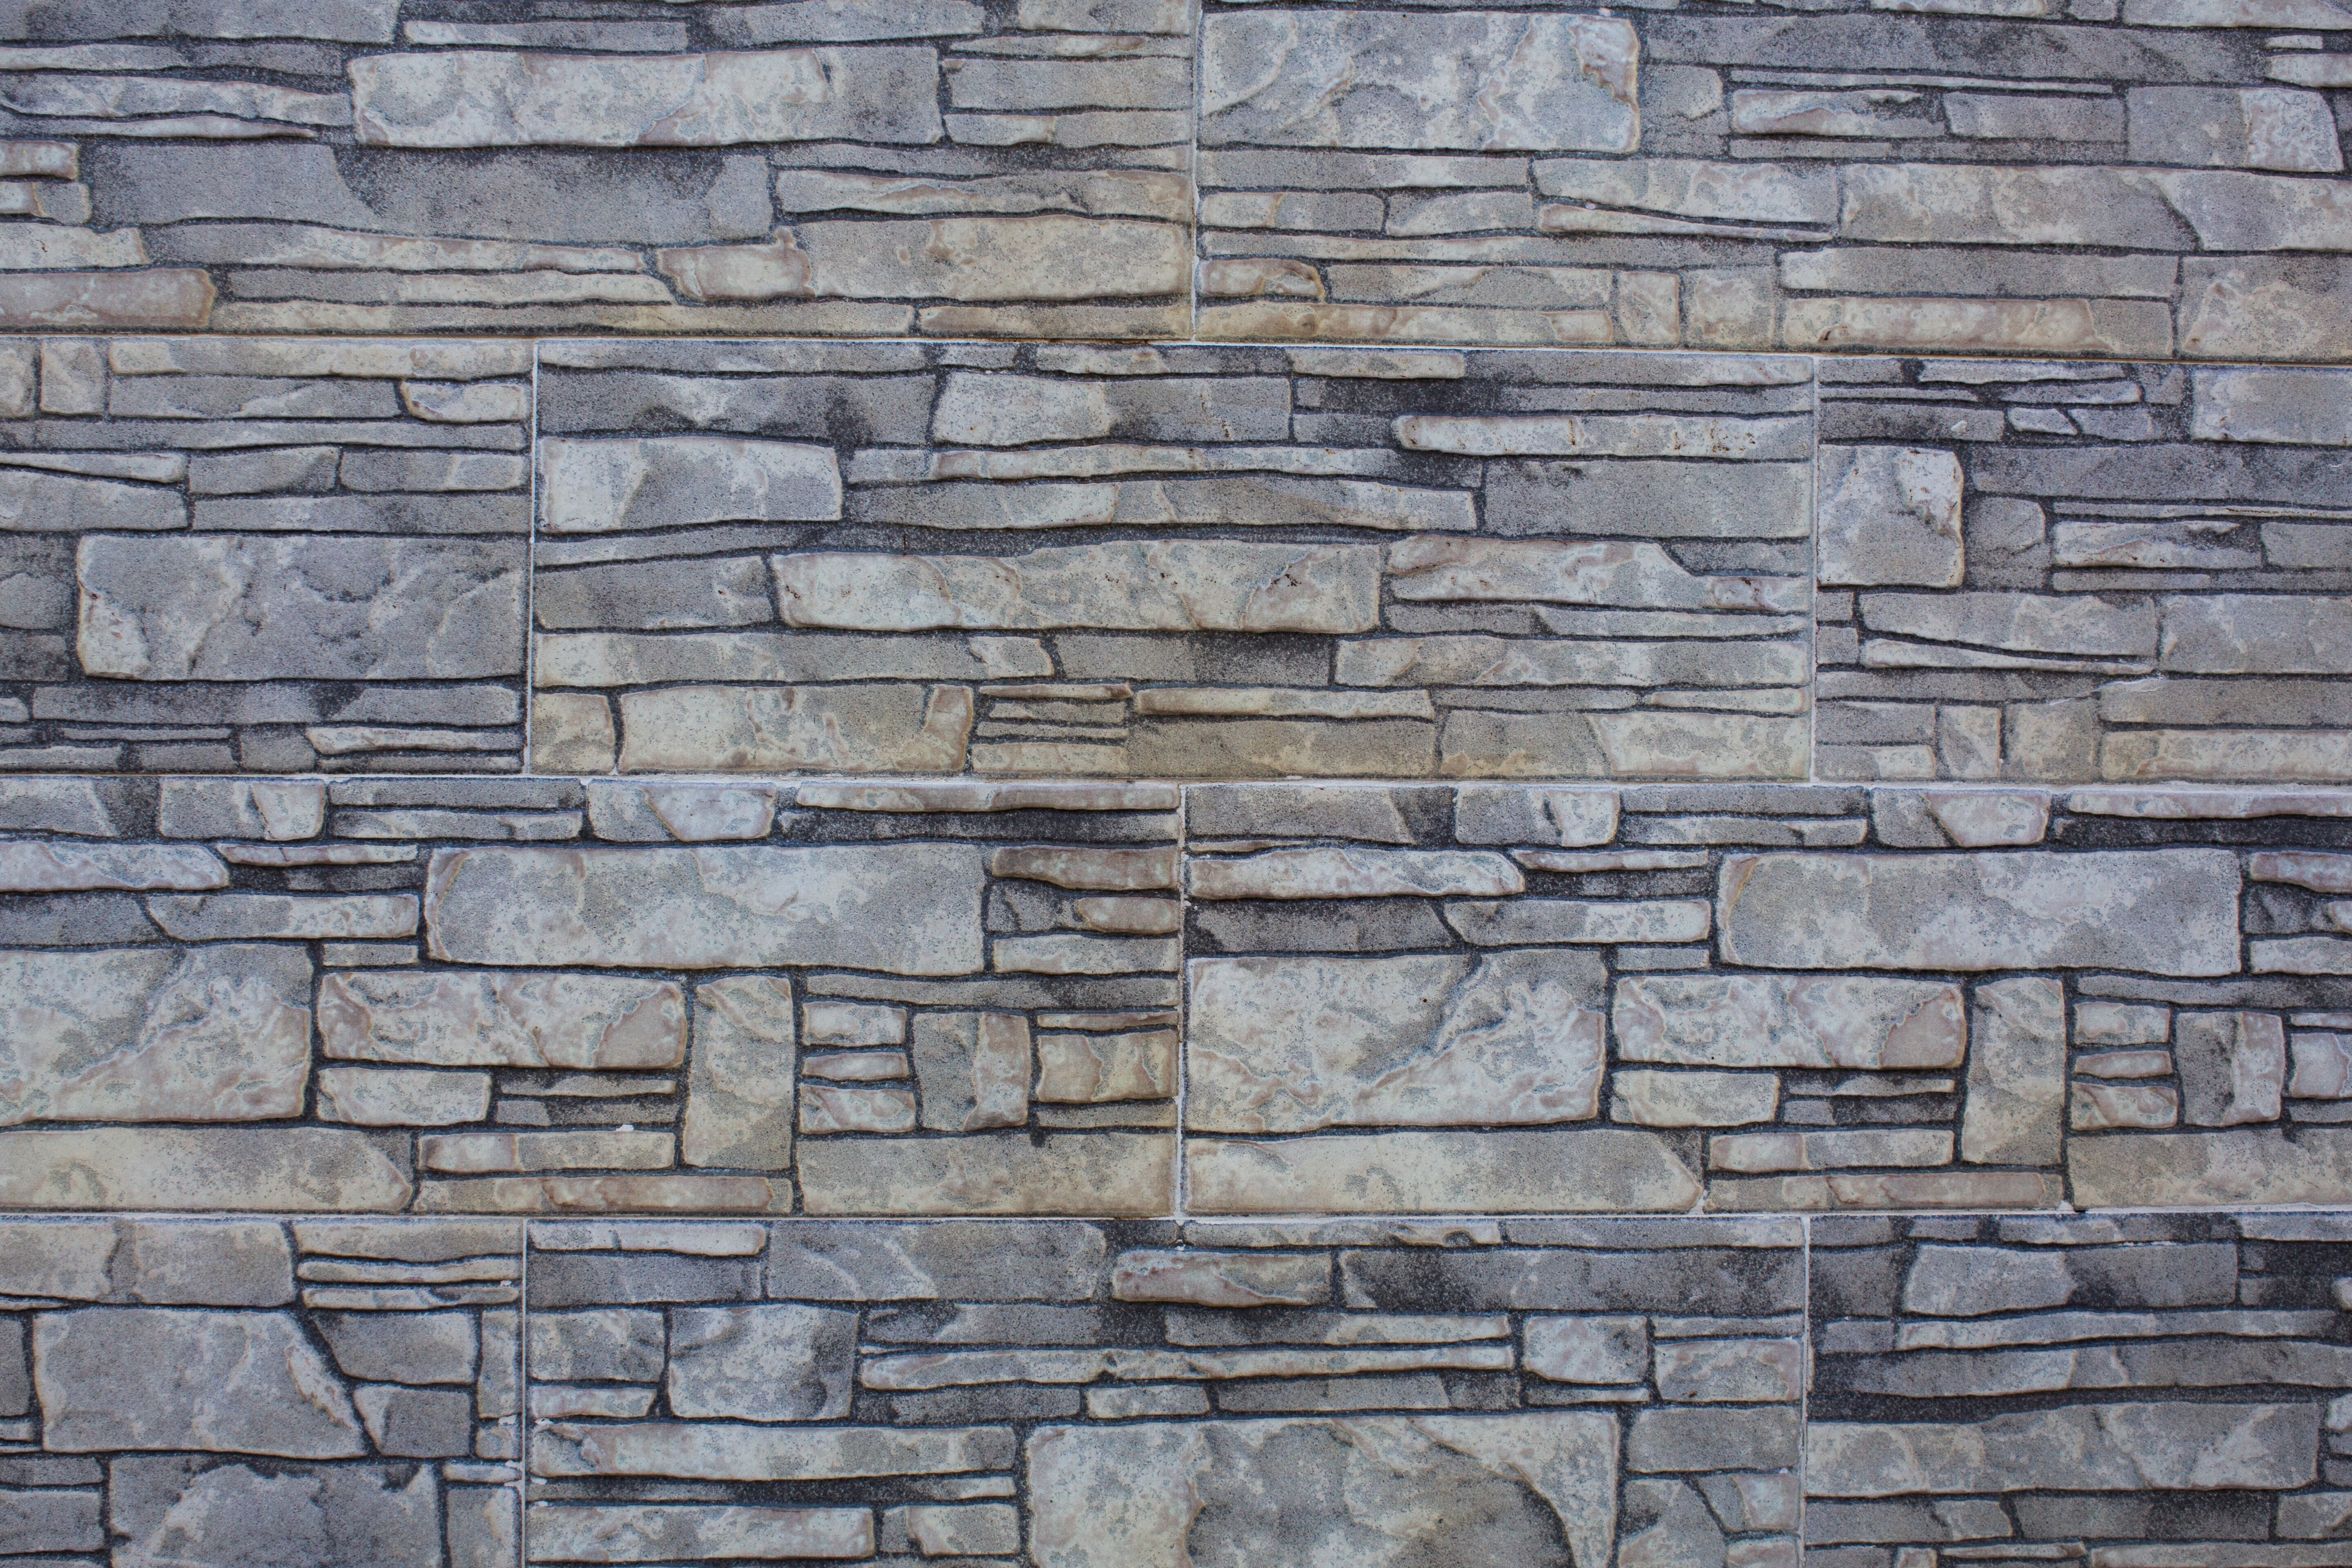 freetoedit texture stone wall background pattern grig...